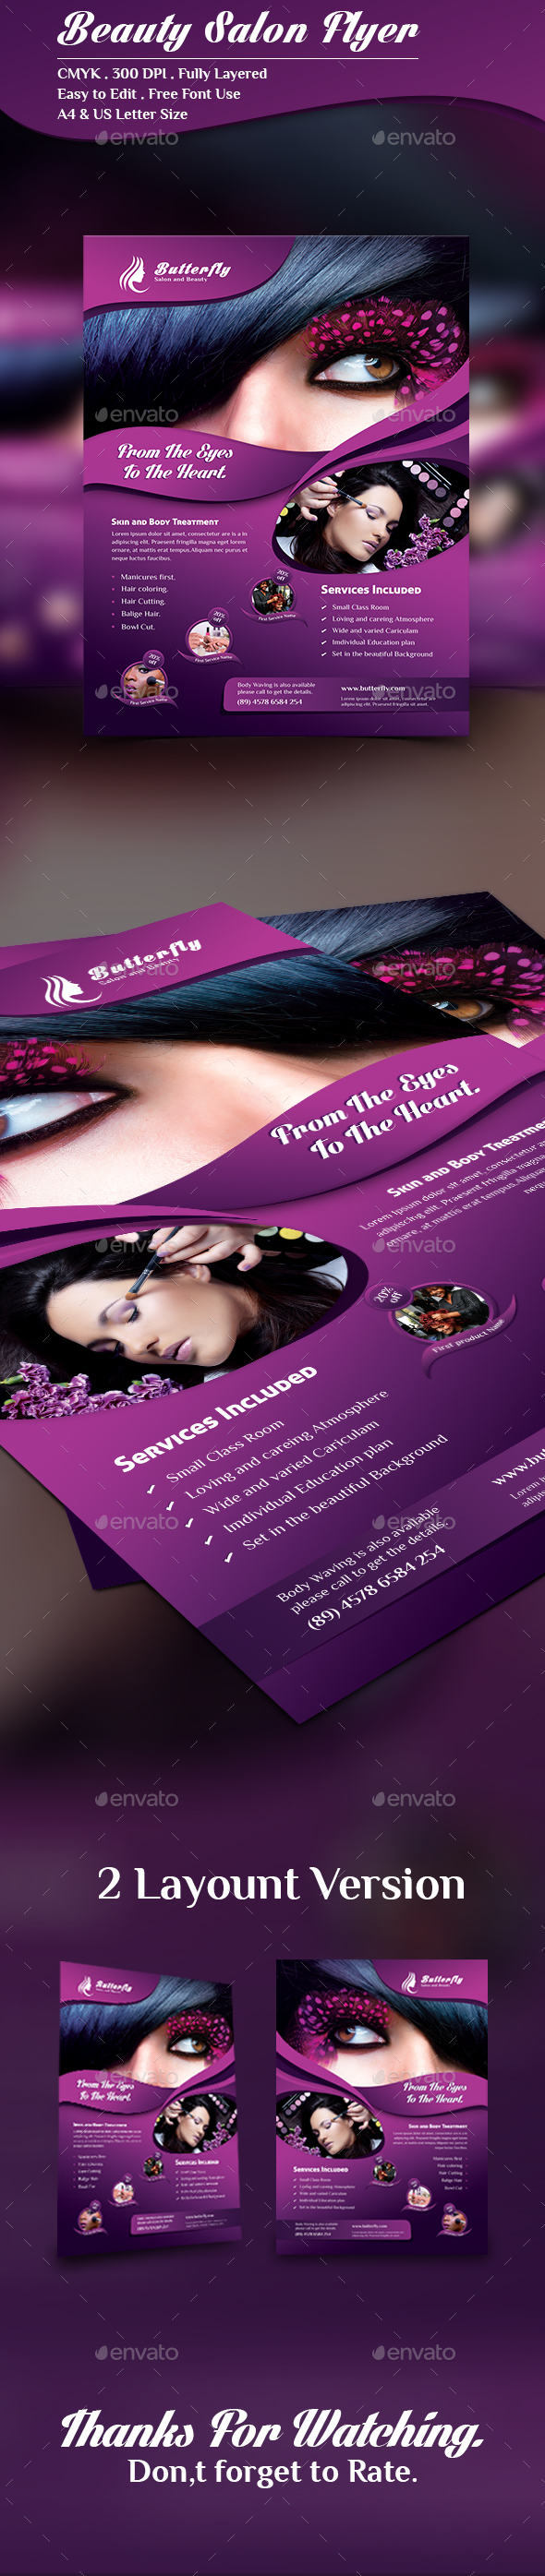 Beauty Salon Flyer - Corporate Flyers